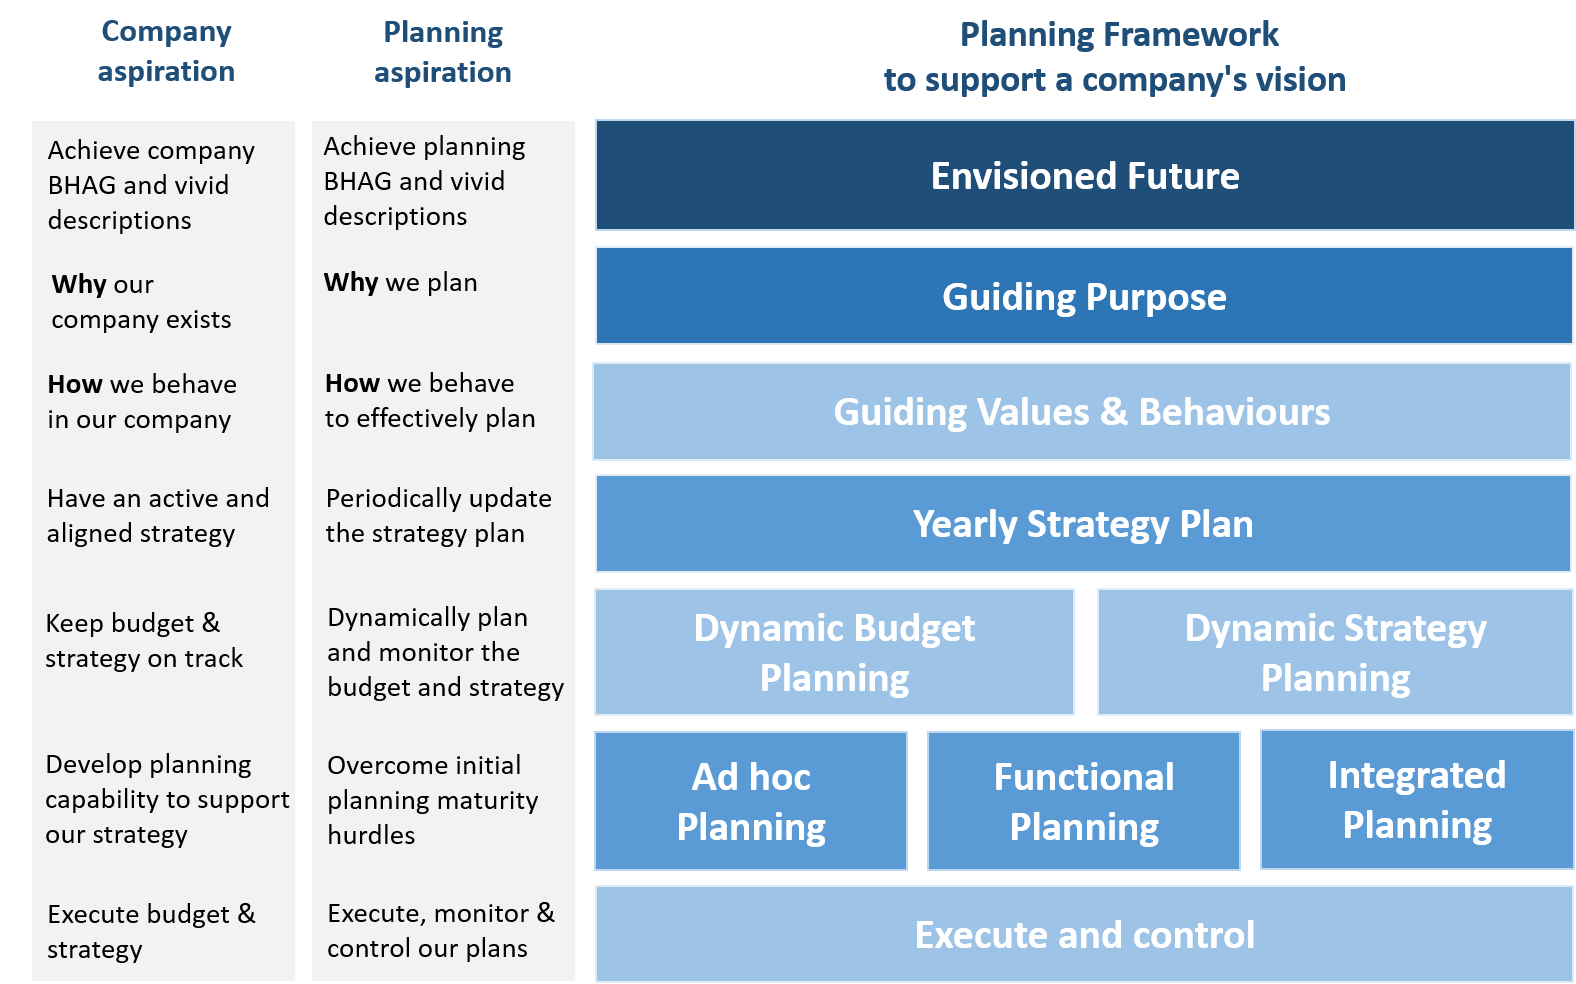 A Planning Framework In Support Of A Company Vision